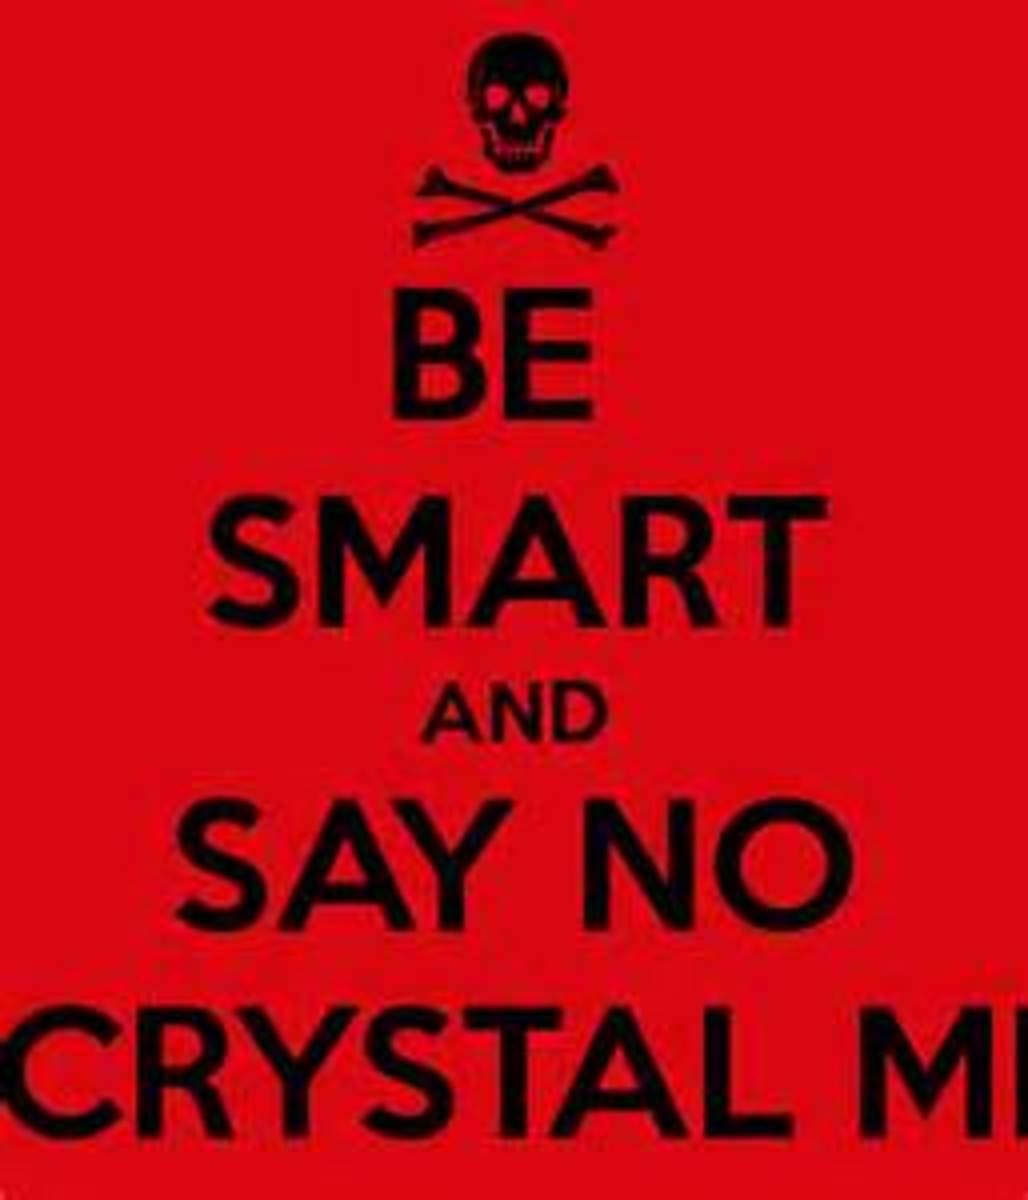 You are NOT Crazy!!